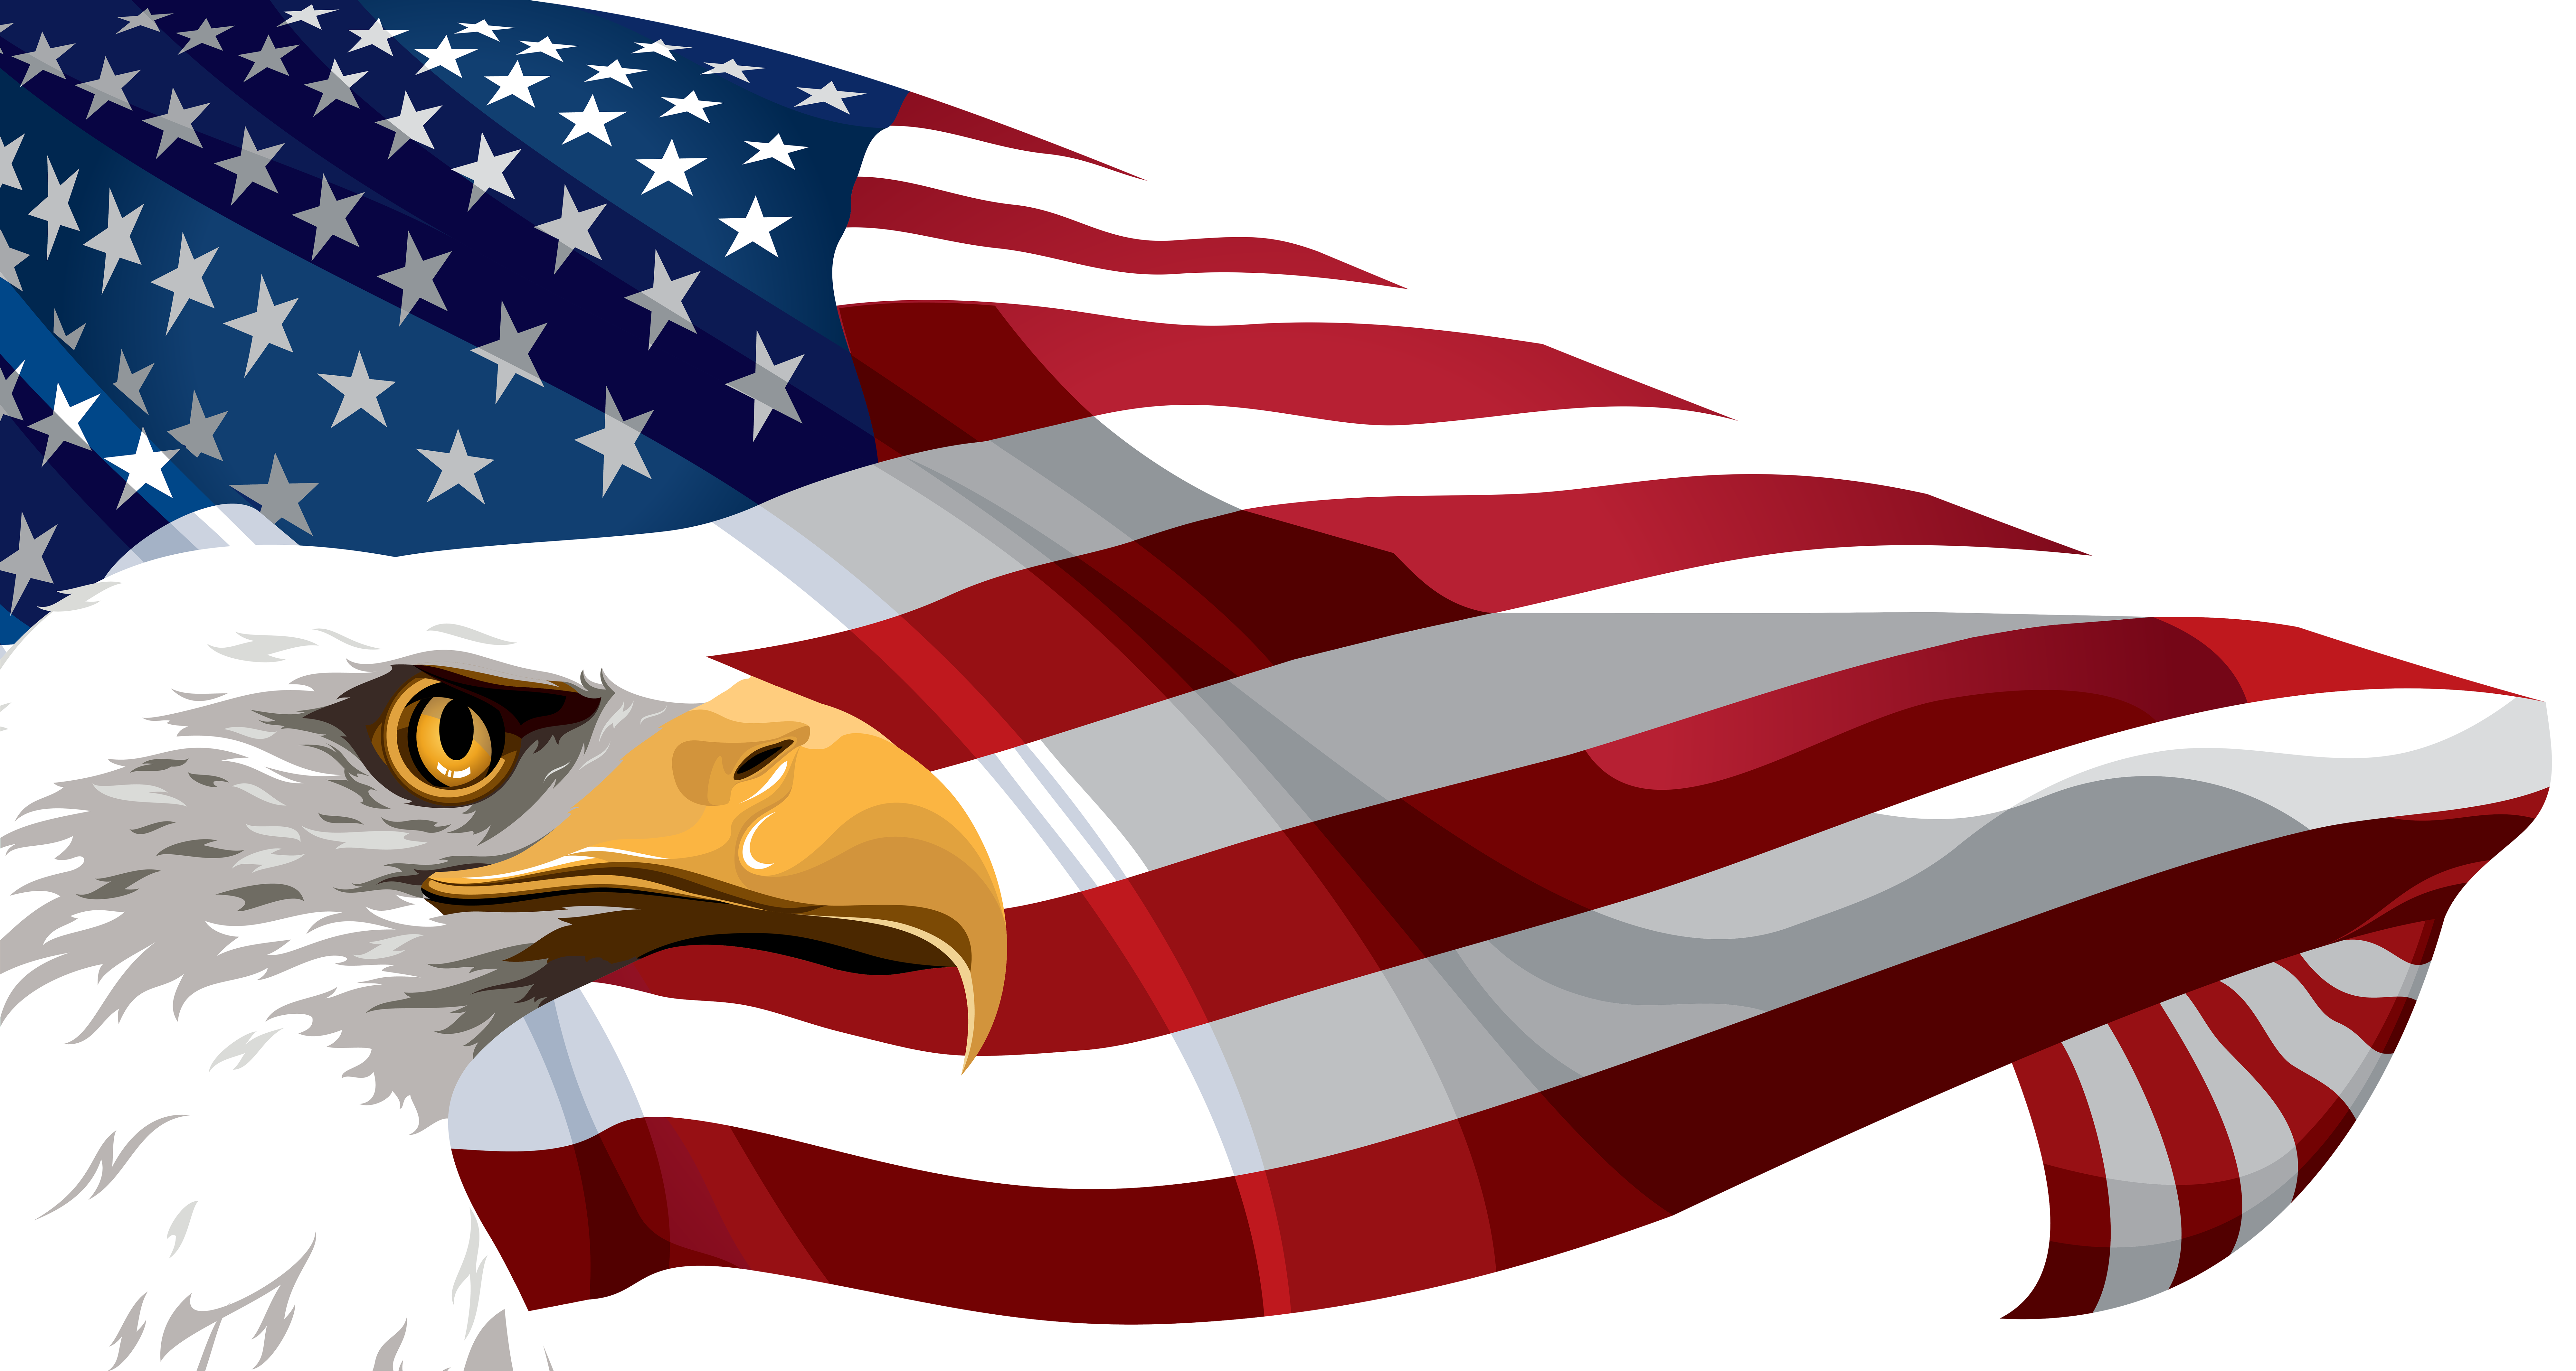 Us clipart vector free library American flag clipart eagle - ClipartFest vector free library